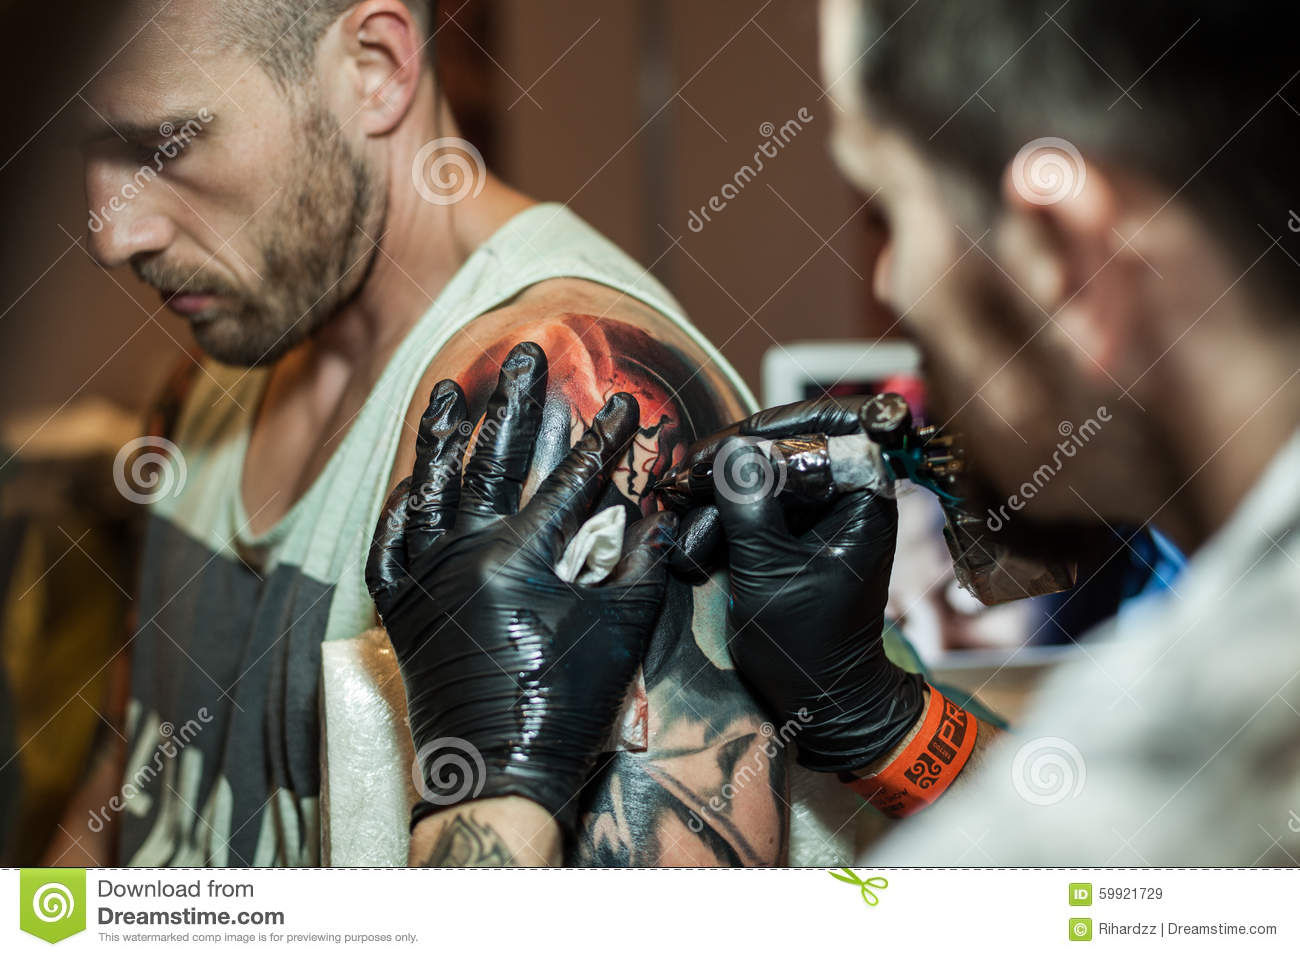 Tattoo Artists At Work Editorial Stock Image - Image: 59921729